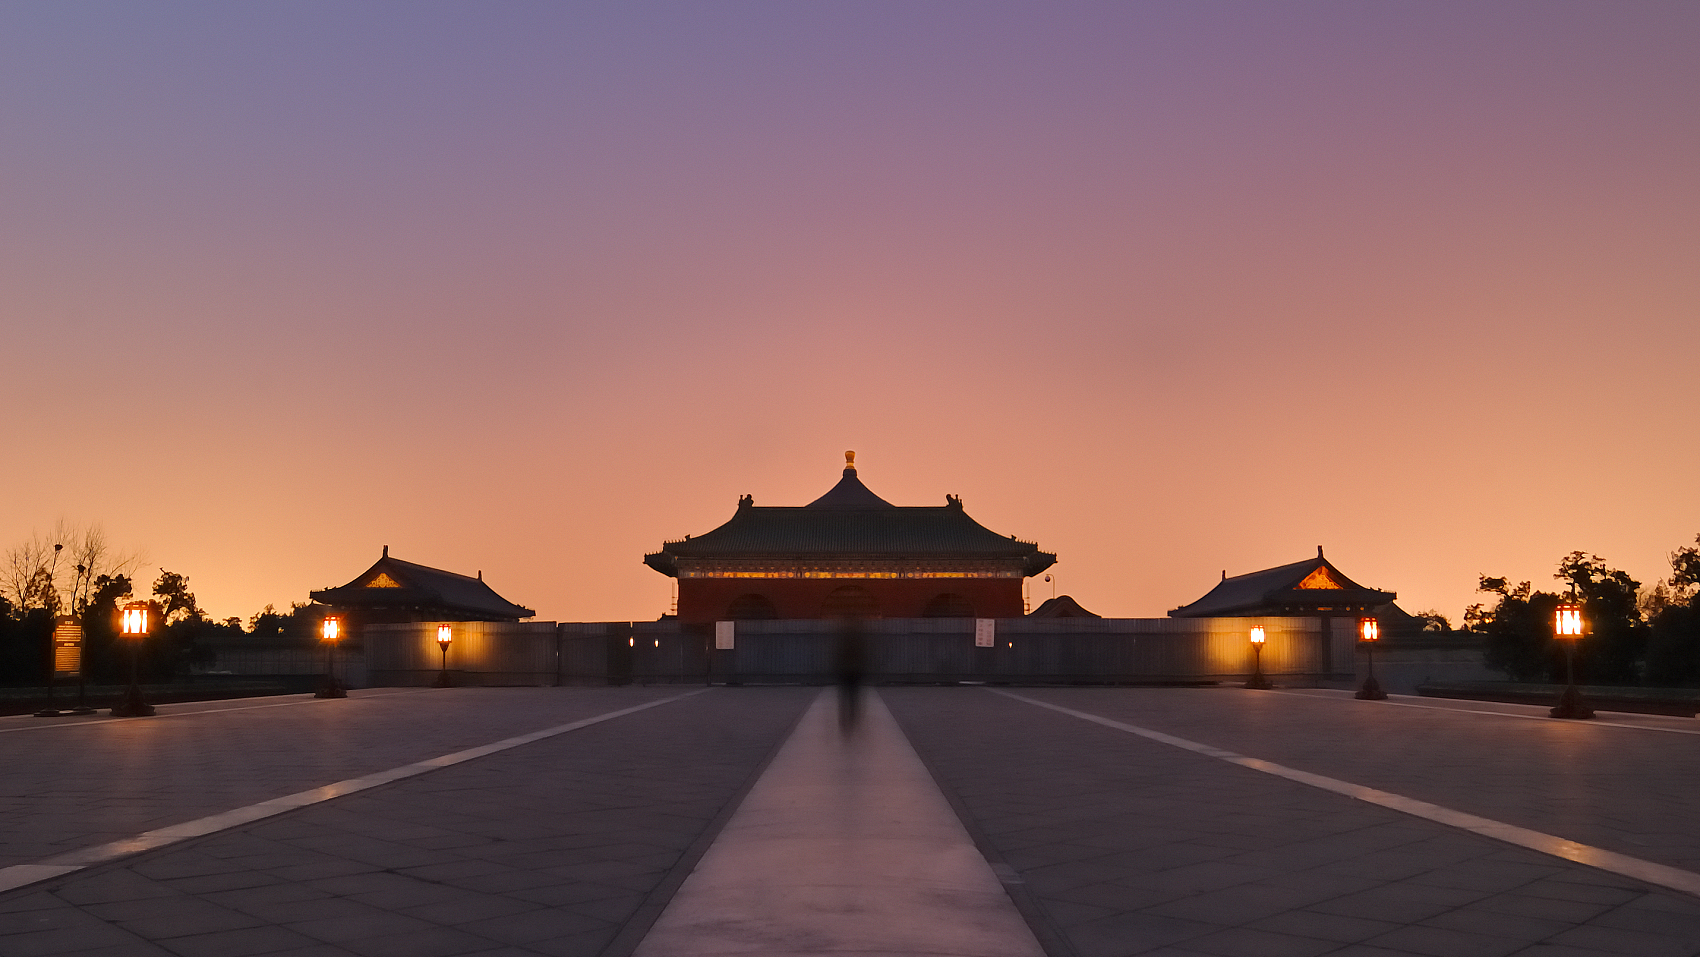 Beijing exhibition marks 600th anniversary of Temple of Heaven